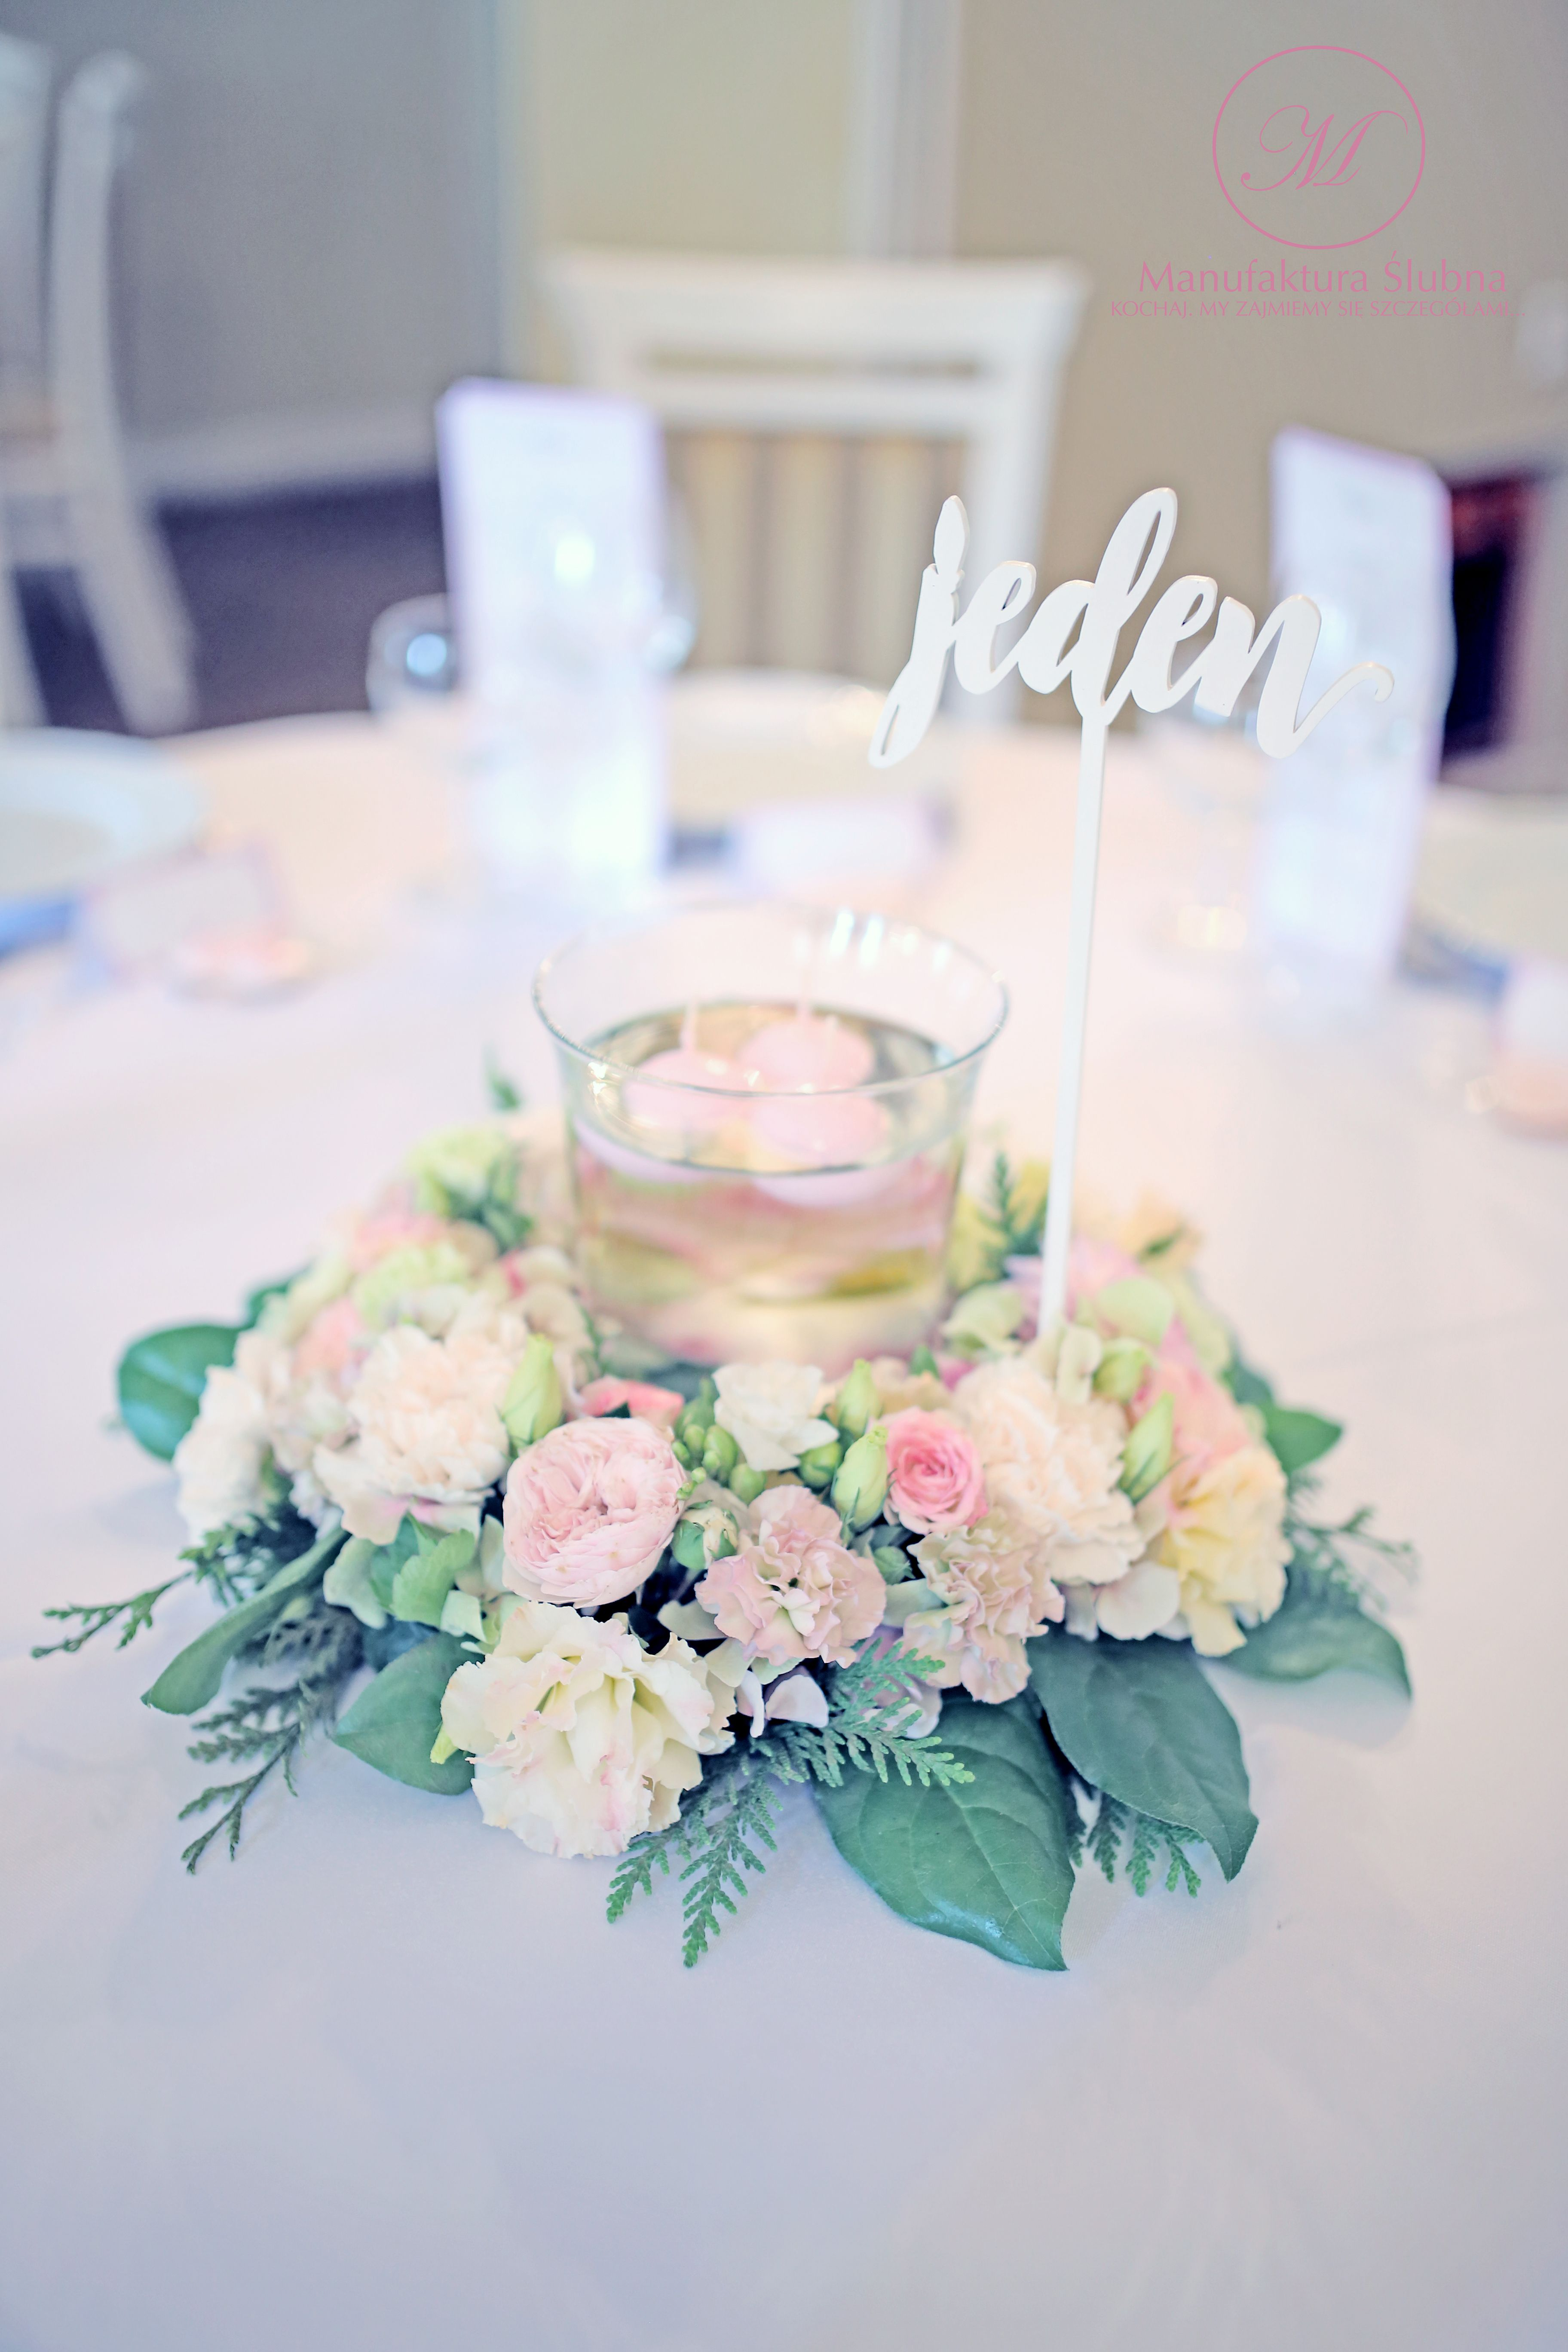 wedding#elegant#decorations#pink#romantic#flowers#wreath#candle ...